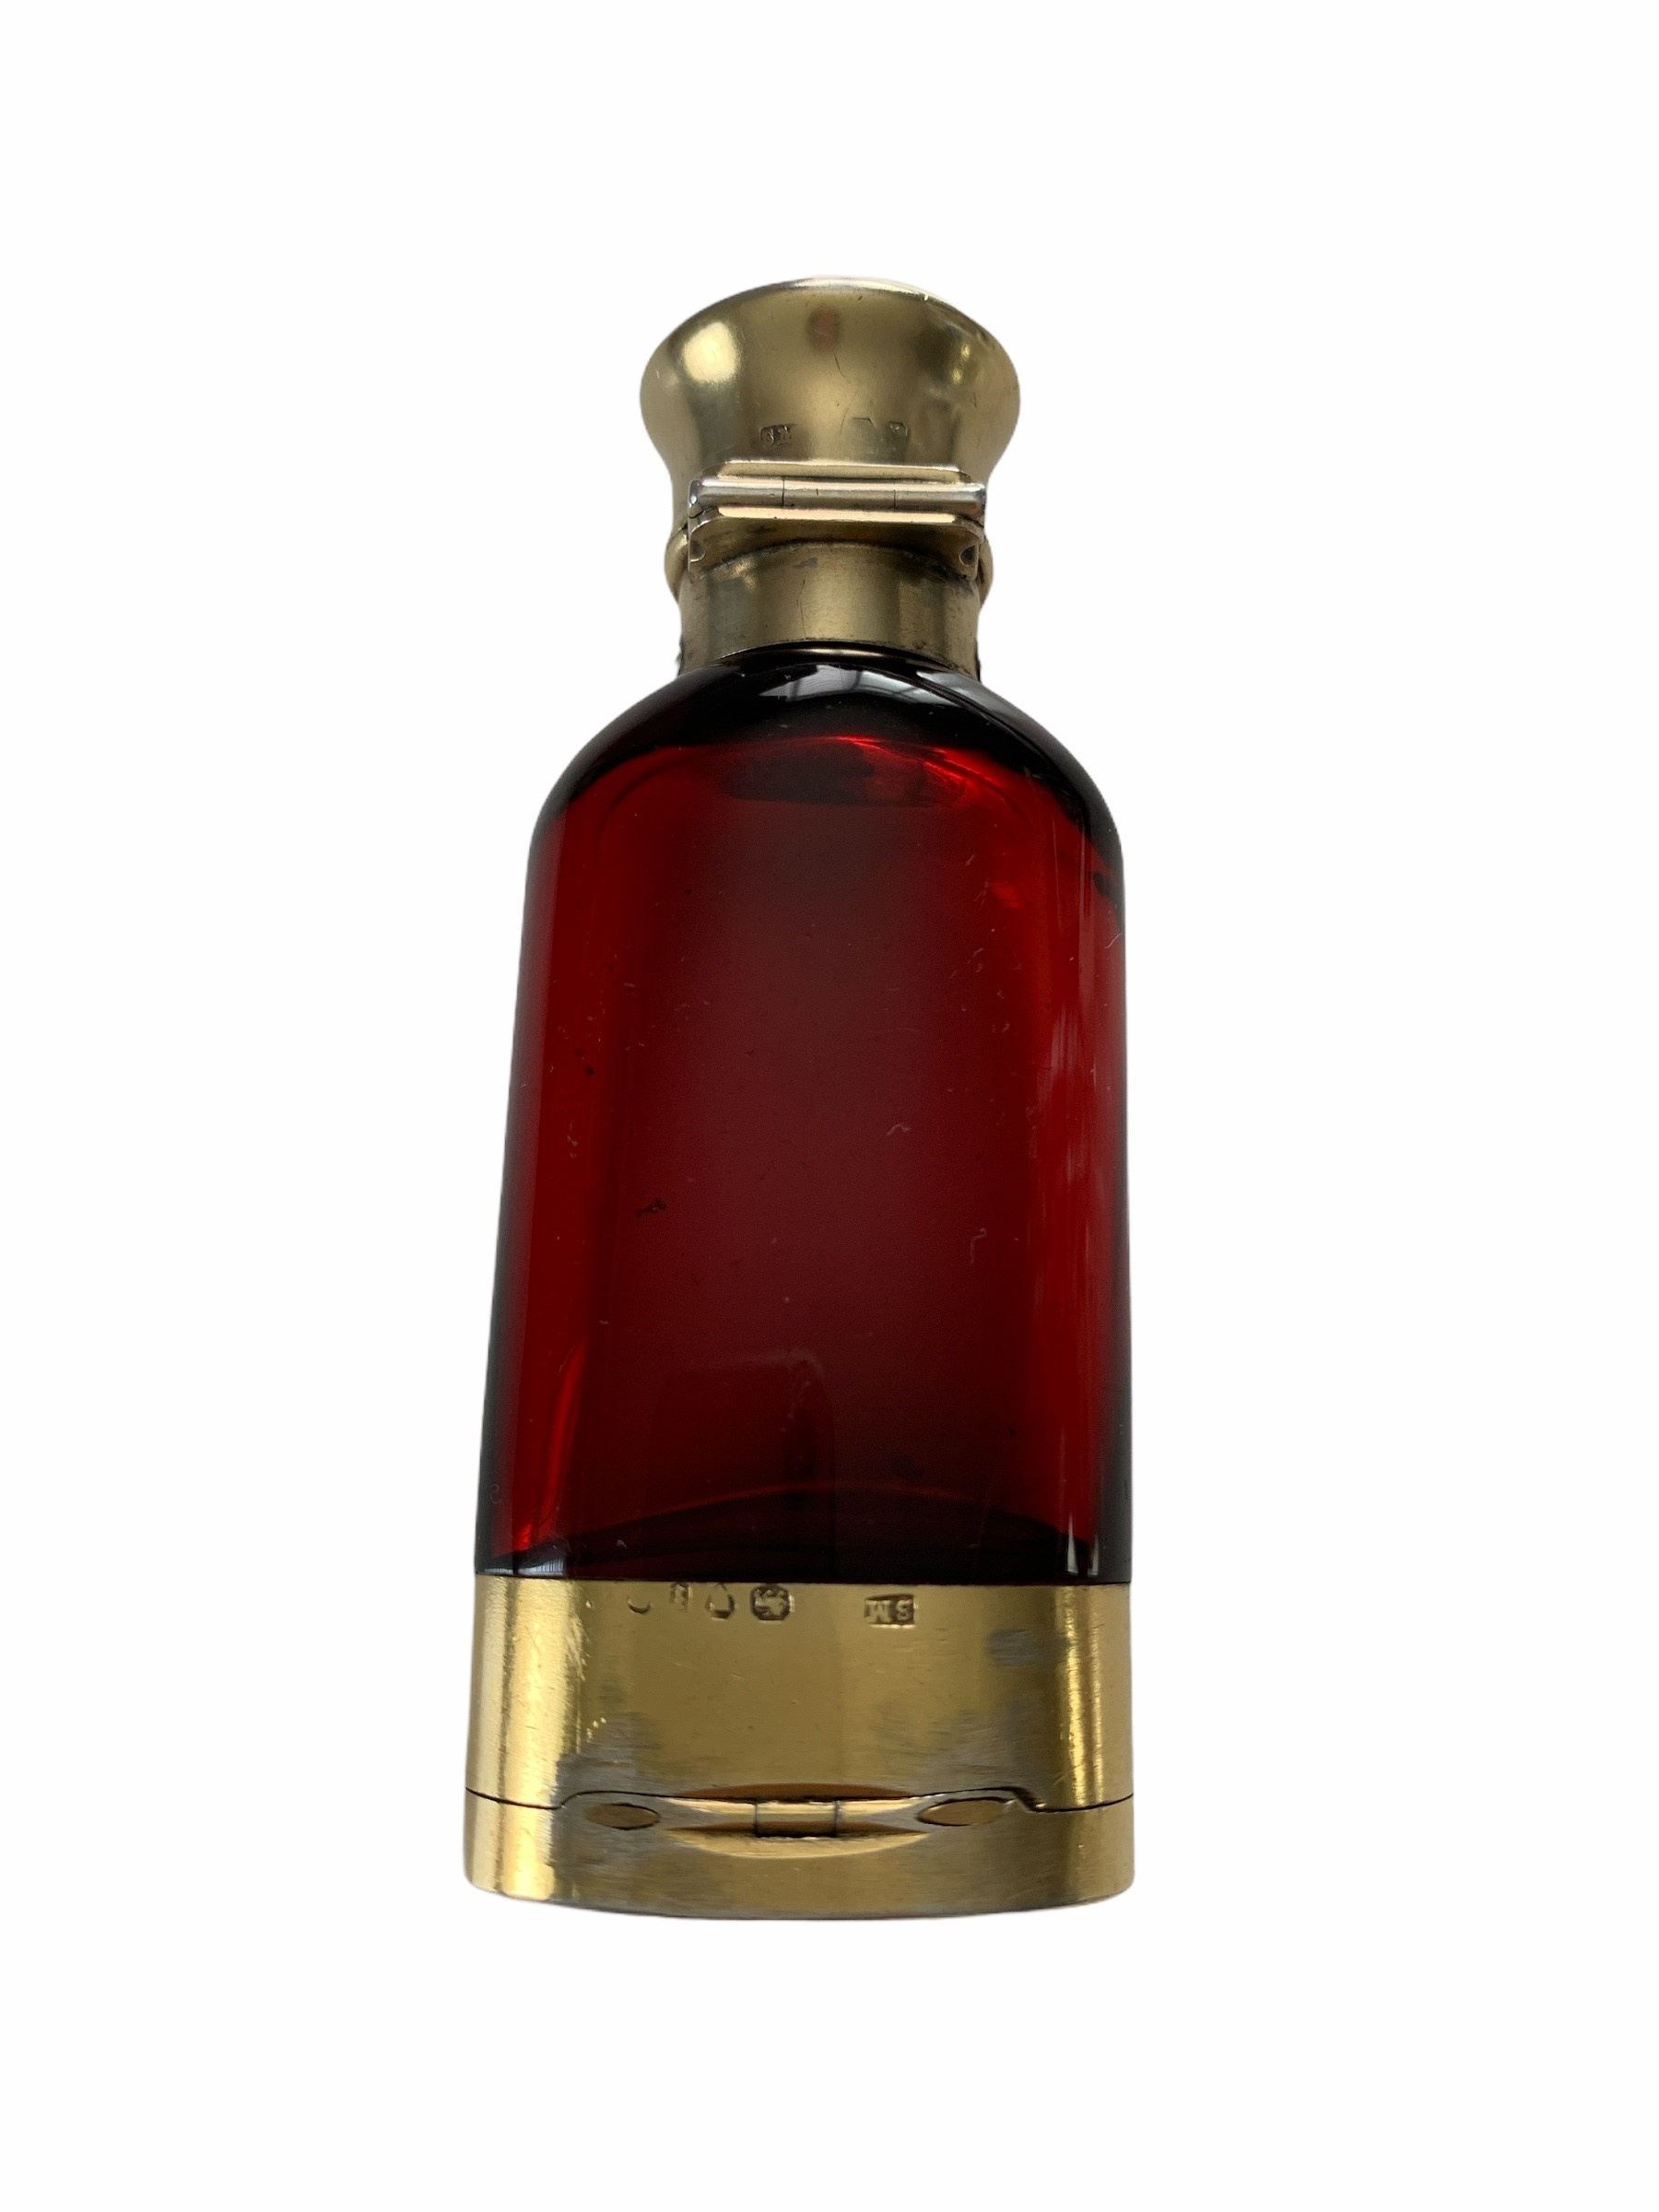 SAMPSON MORDAN & CO., LONDON, 1866, A VERY FINE QUALITY VICTORIAN SILVER GILT MOUNTED RUBY RED GLASS - Image 2 of 5